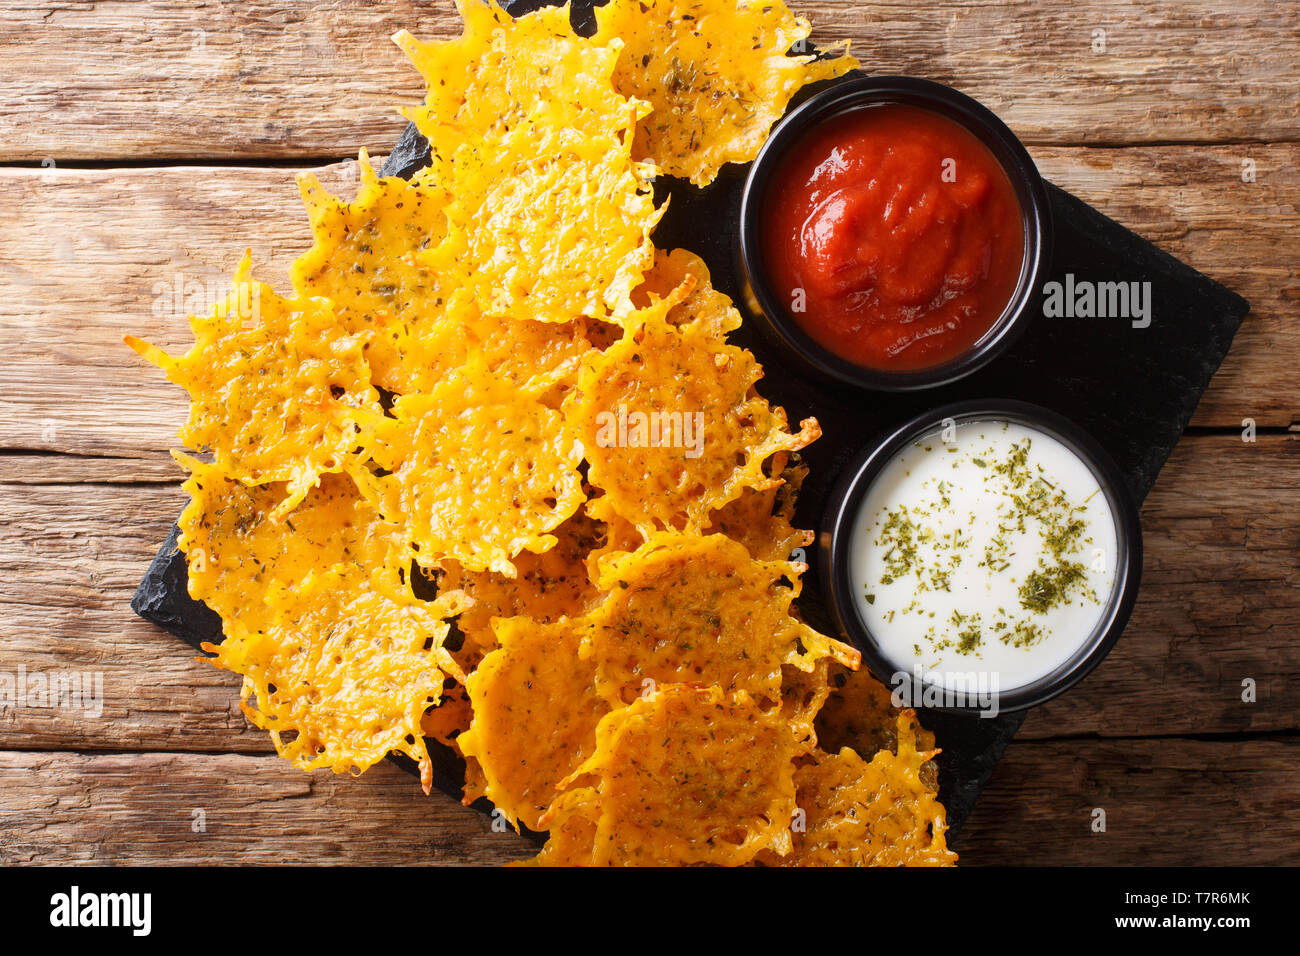 Delicious Appetizer Of Cheddar Cheese Chips With Herbs